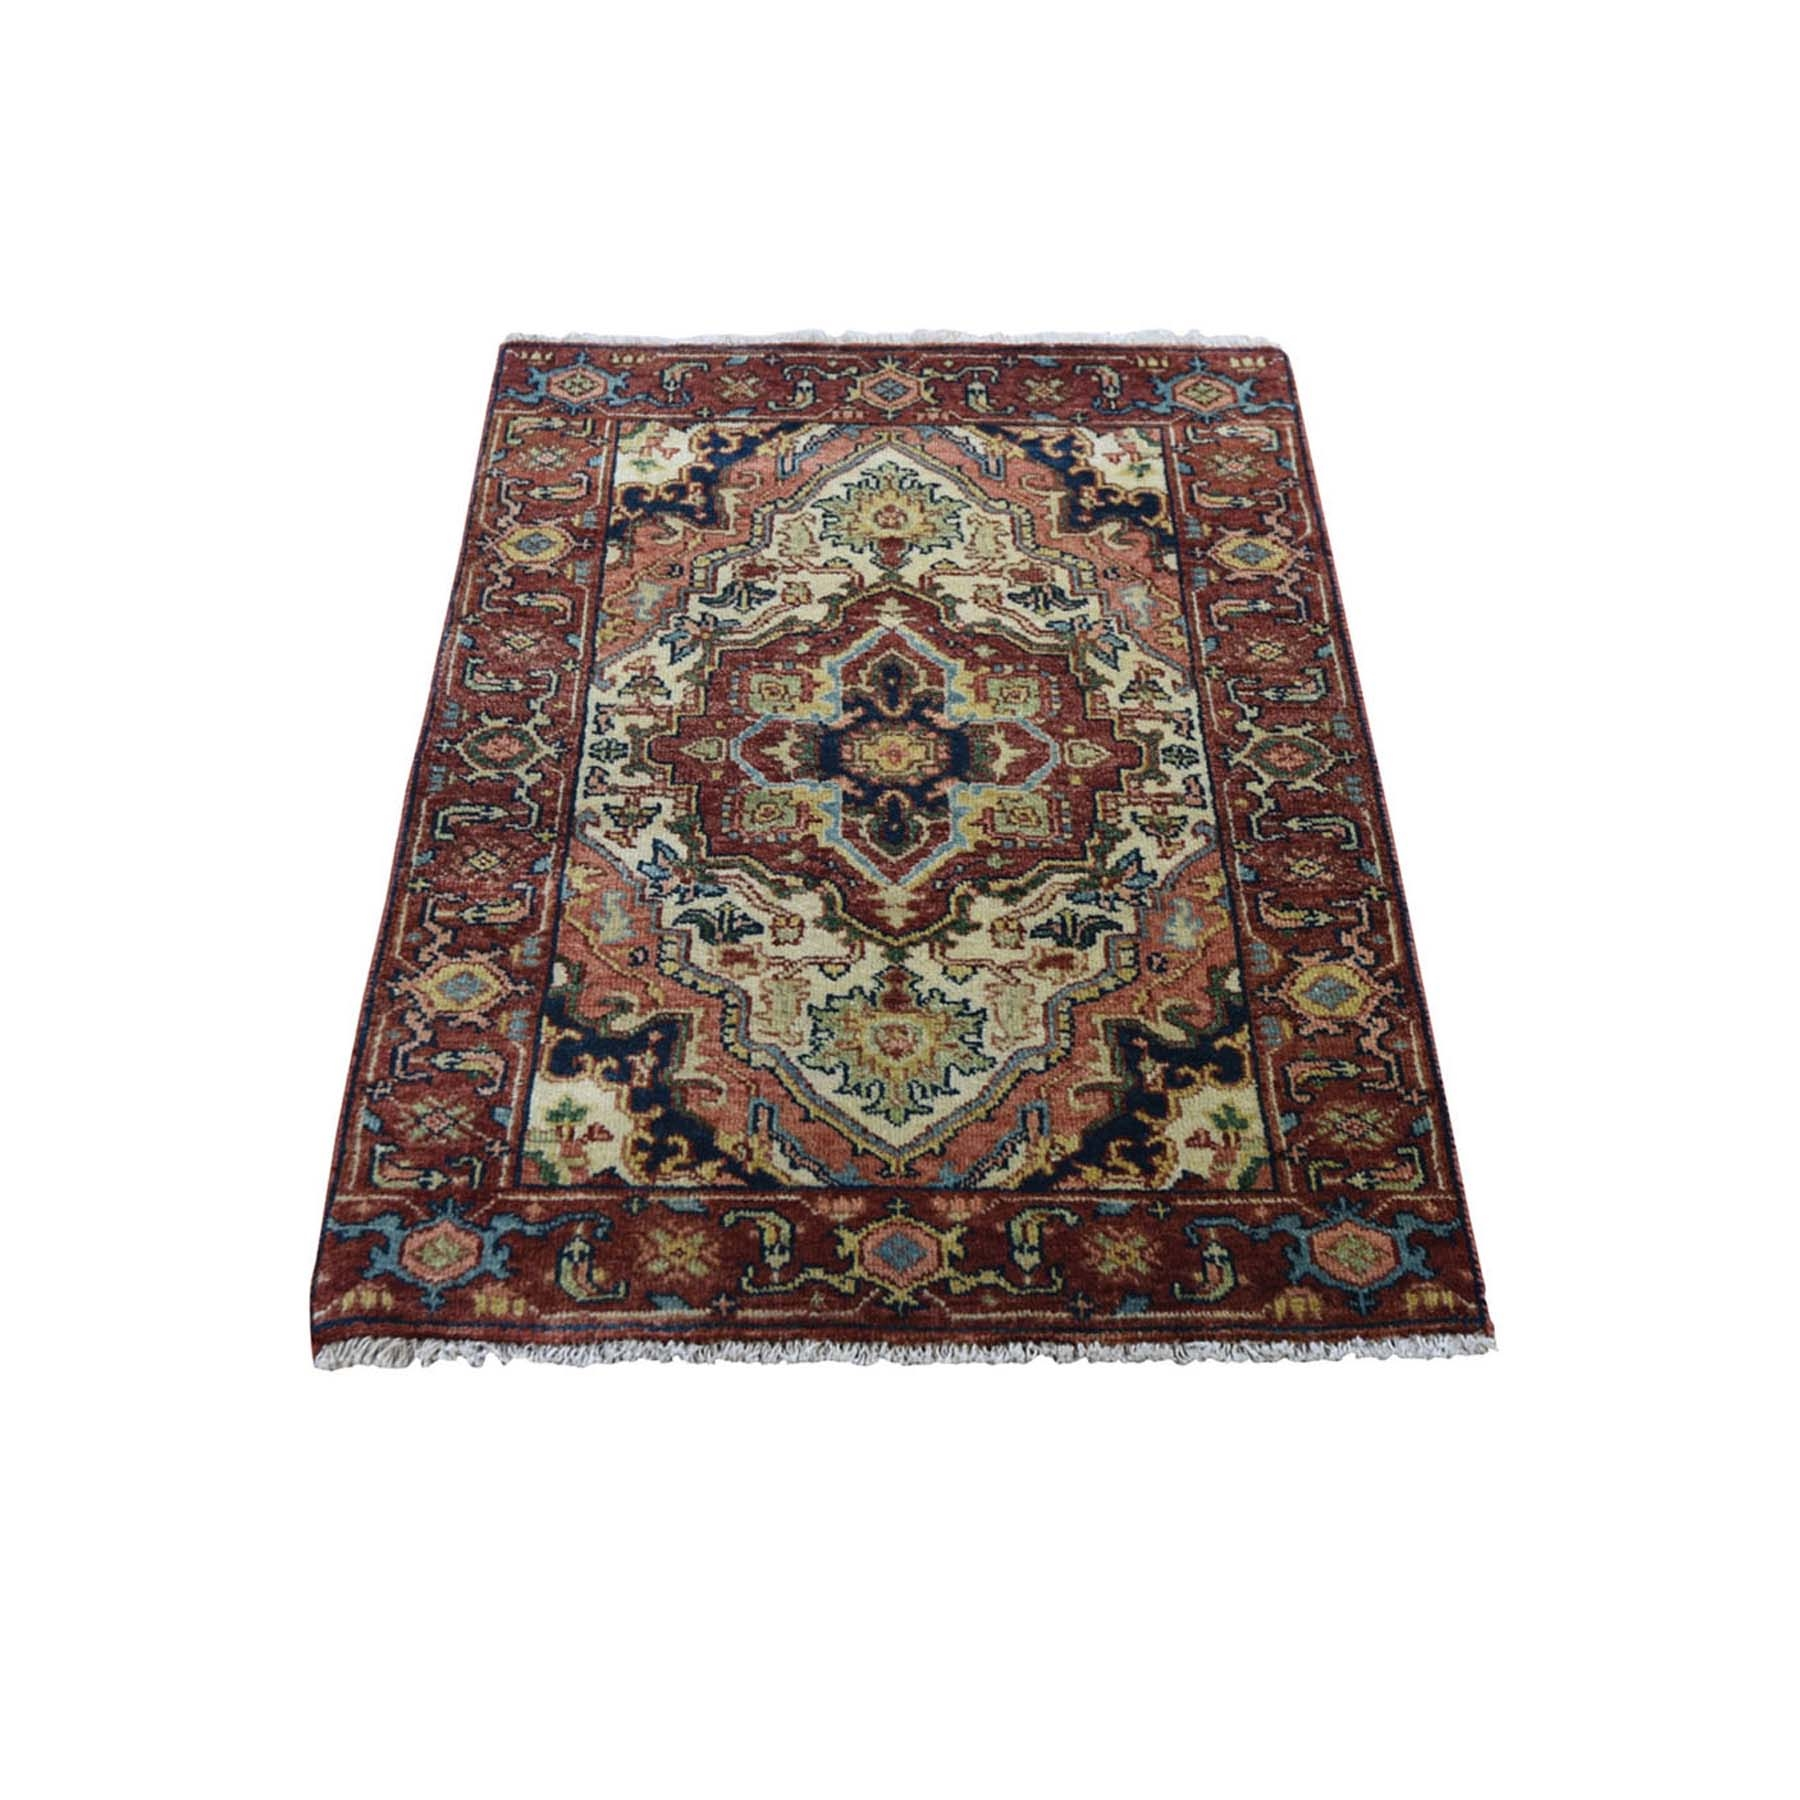 2'x3' Antiqued Heriz Re-Creation Hand Knotted Pure Wool Oriental Rug